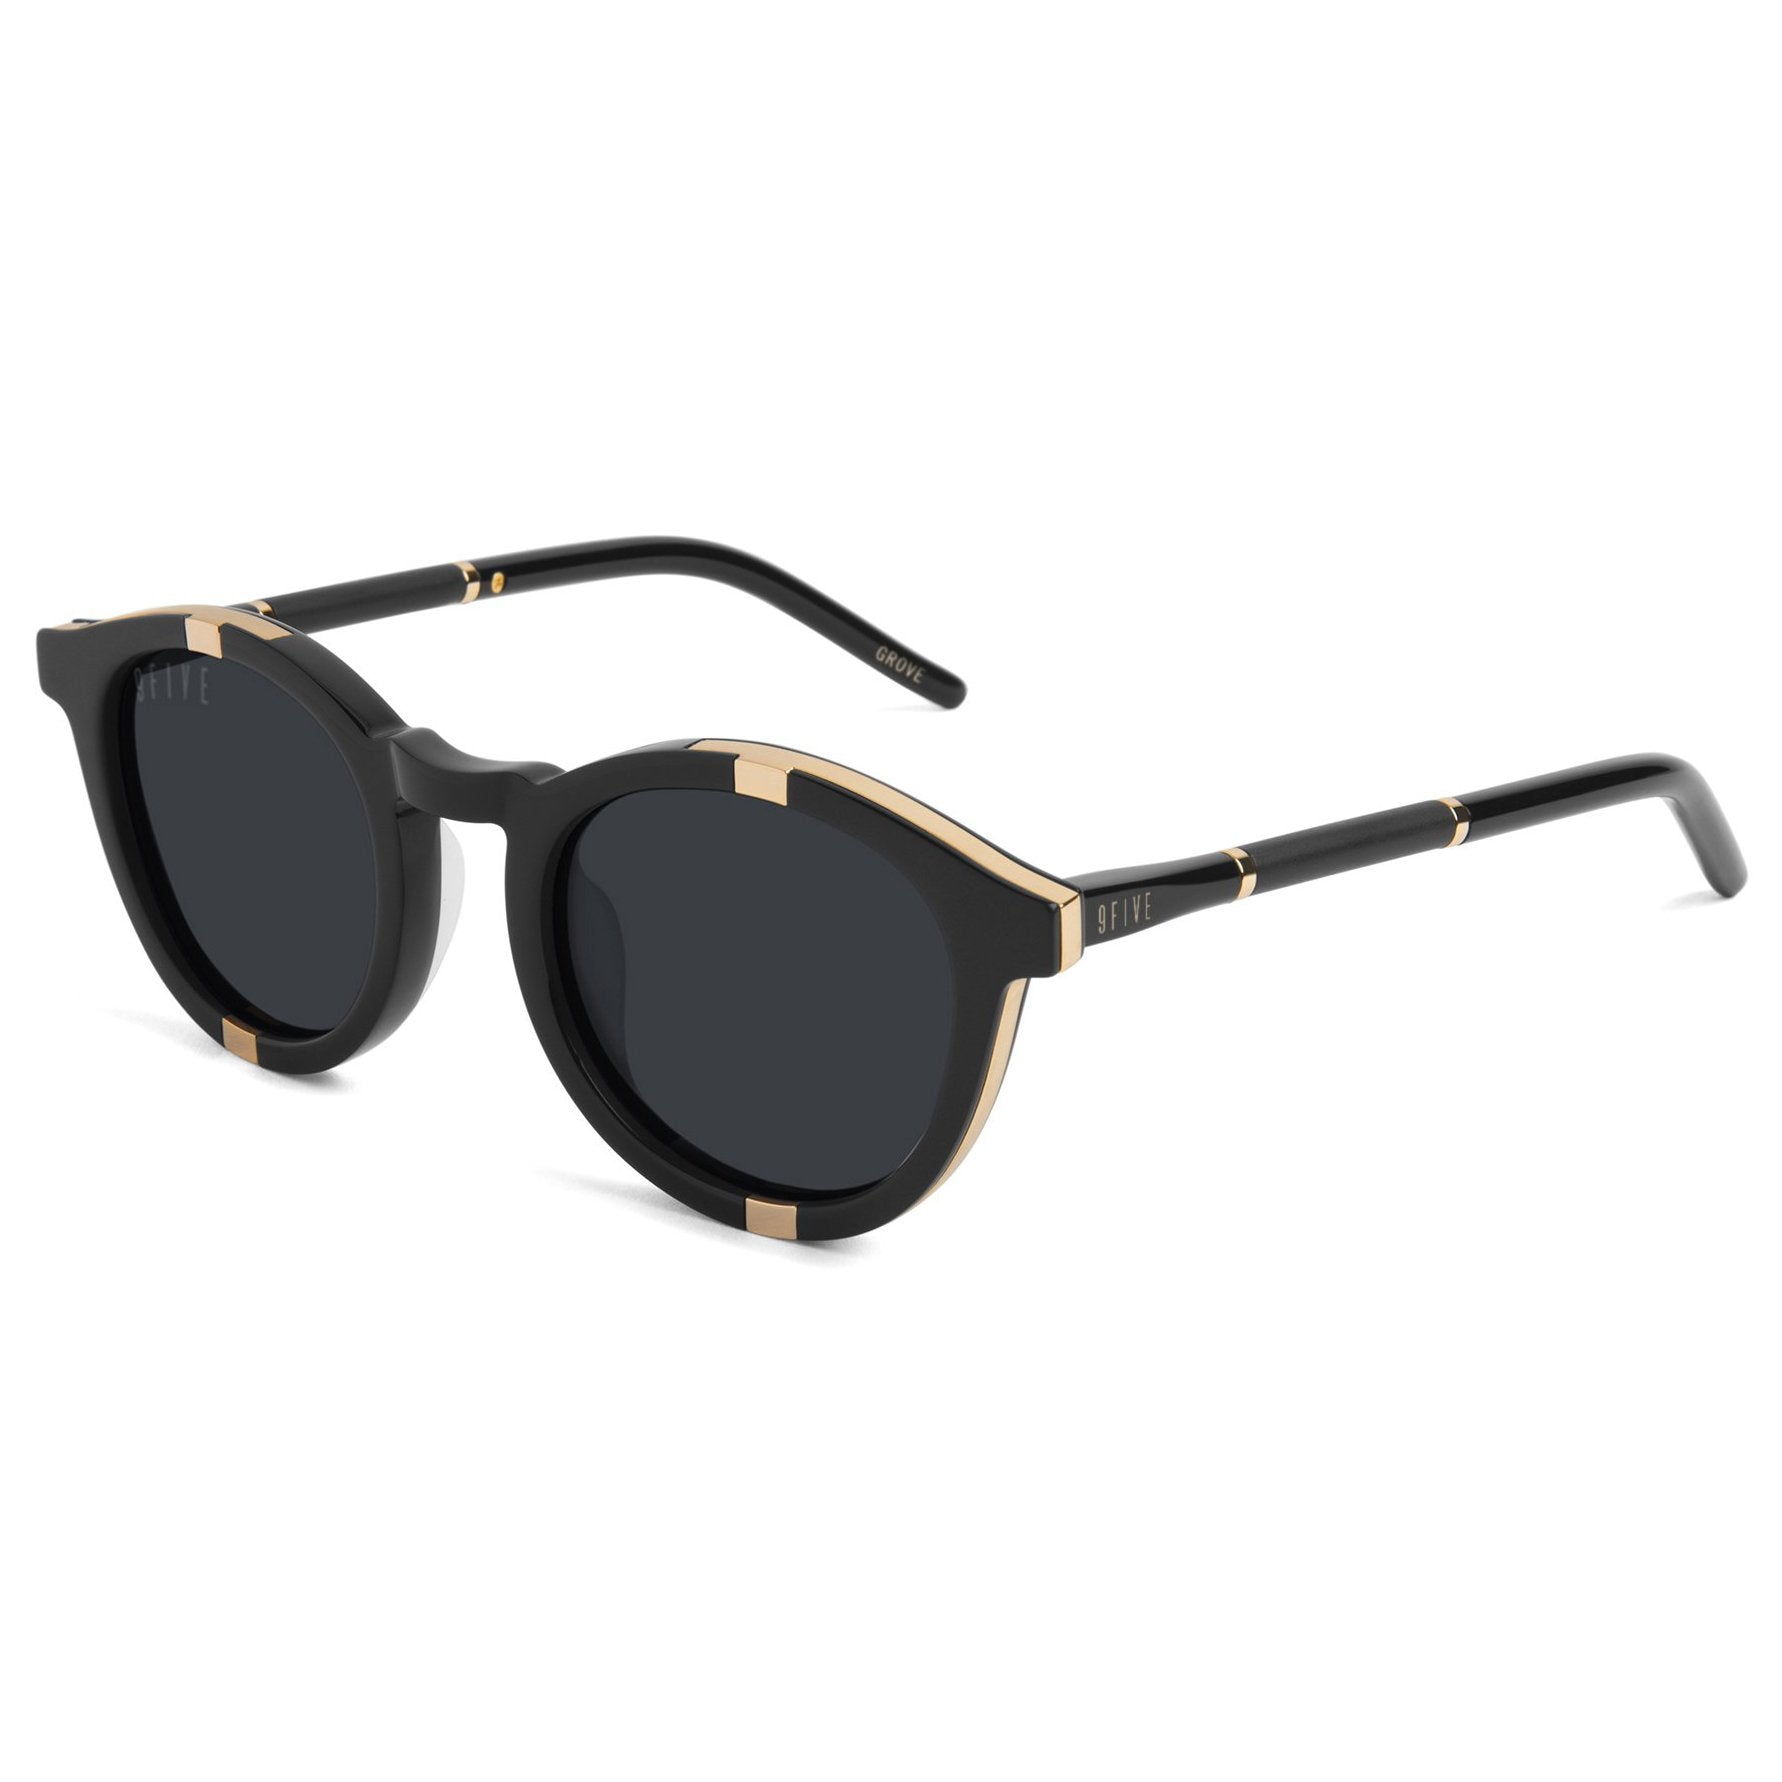 9FIVE Grove Sunglasses - Black/Gold Product Photo #1